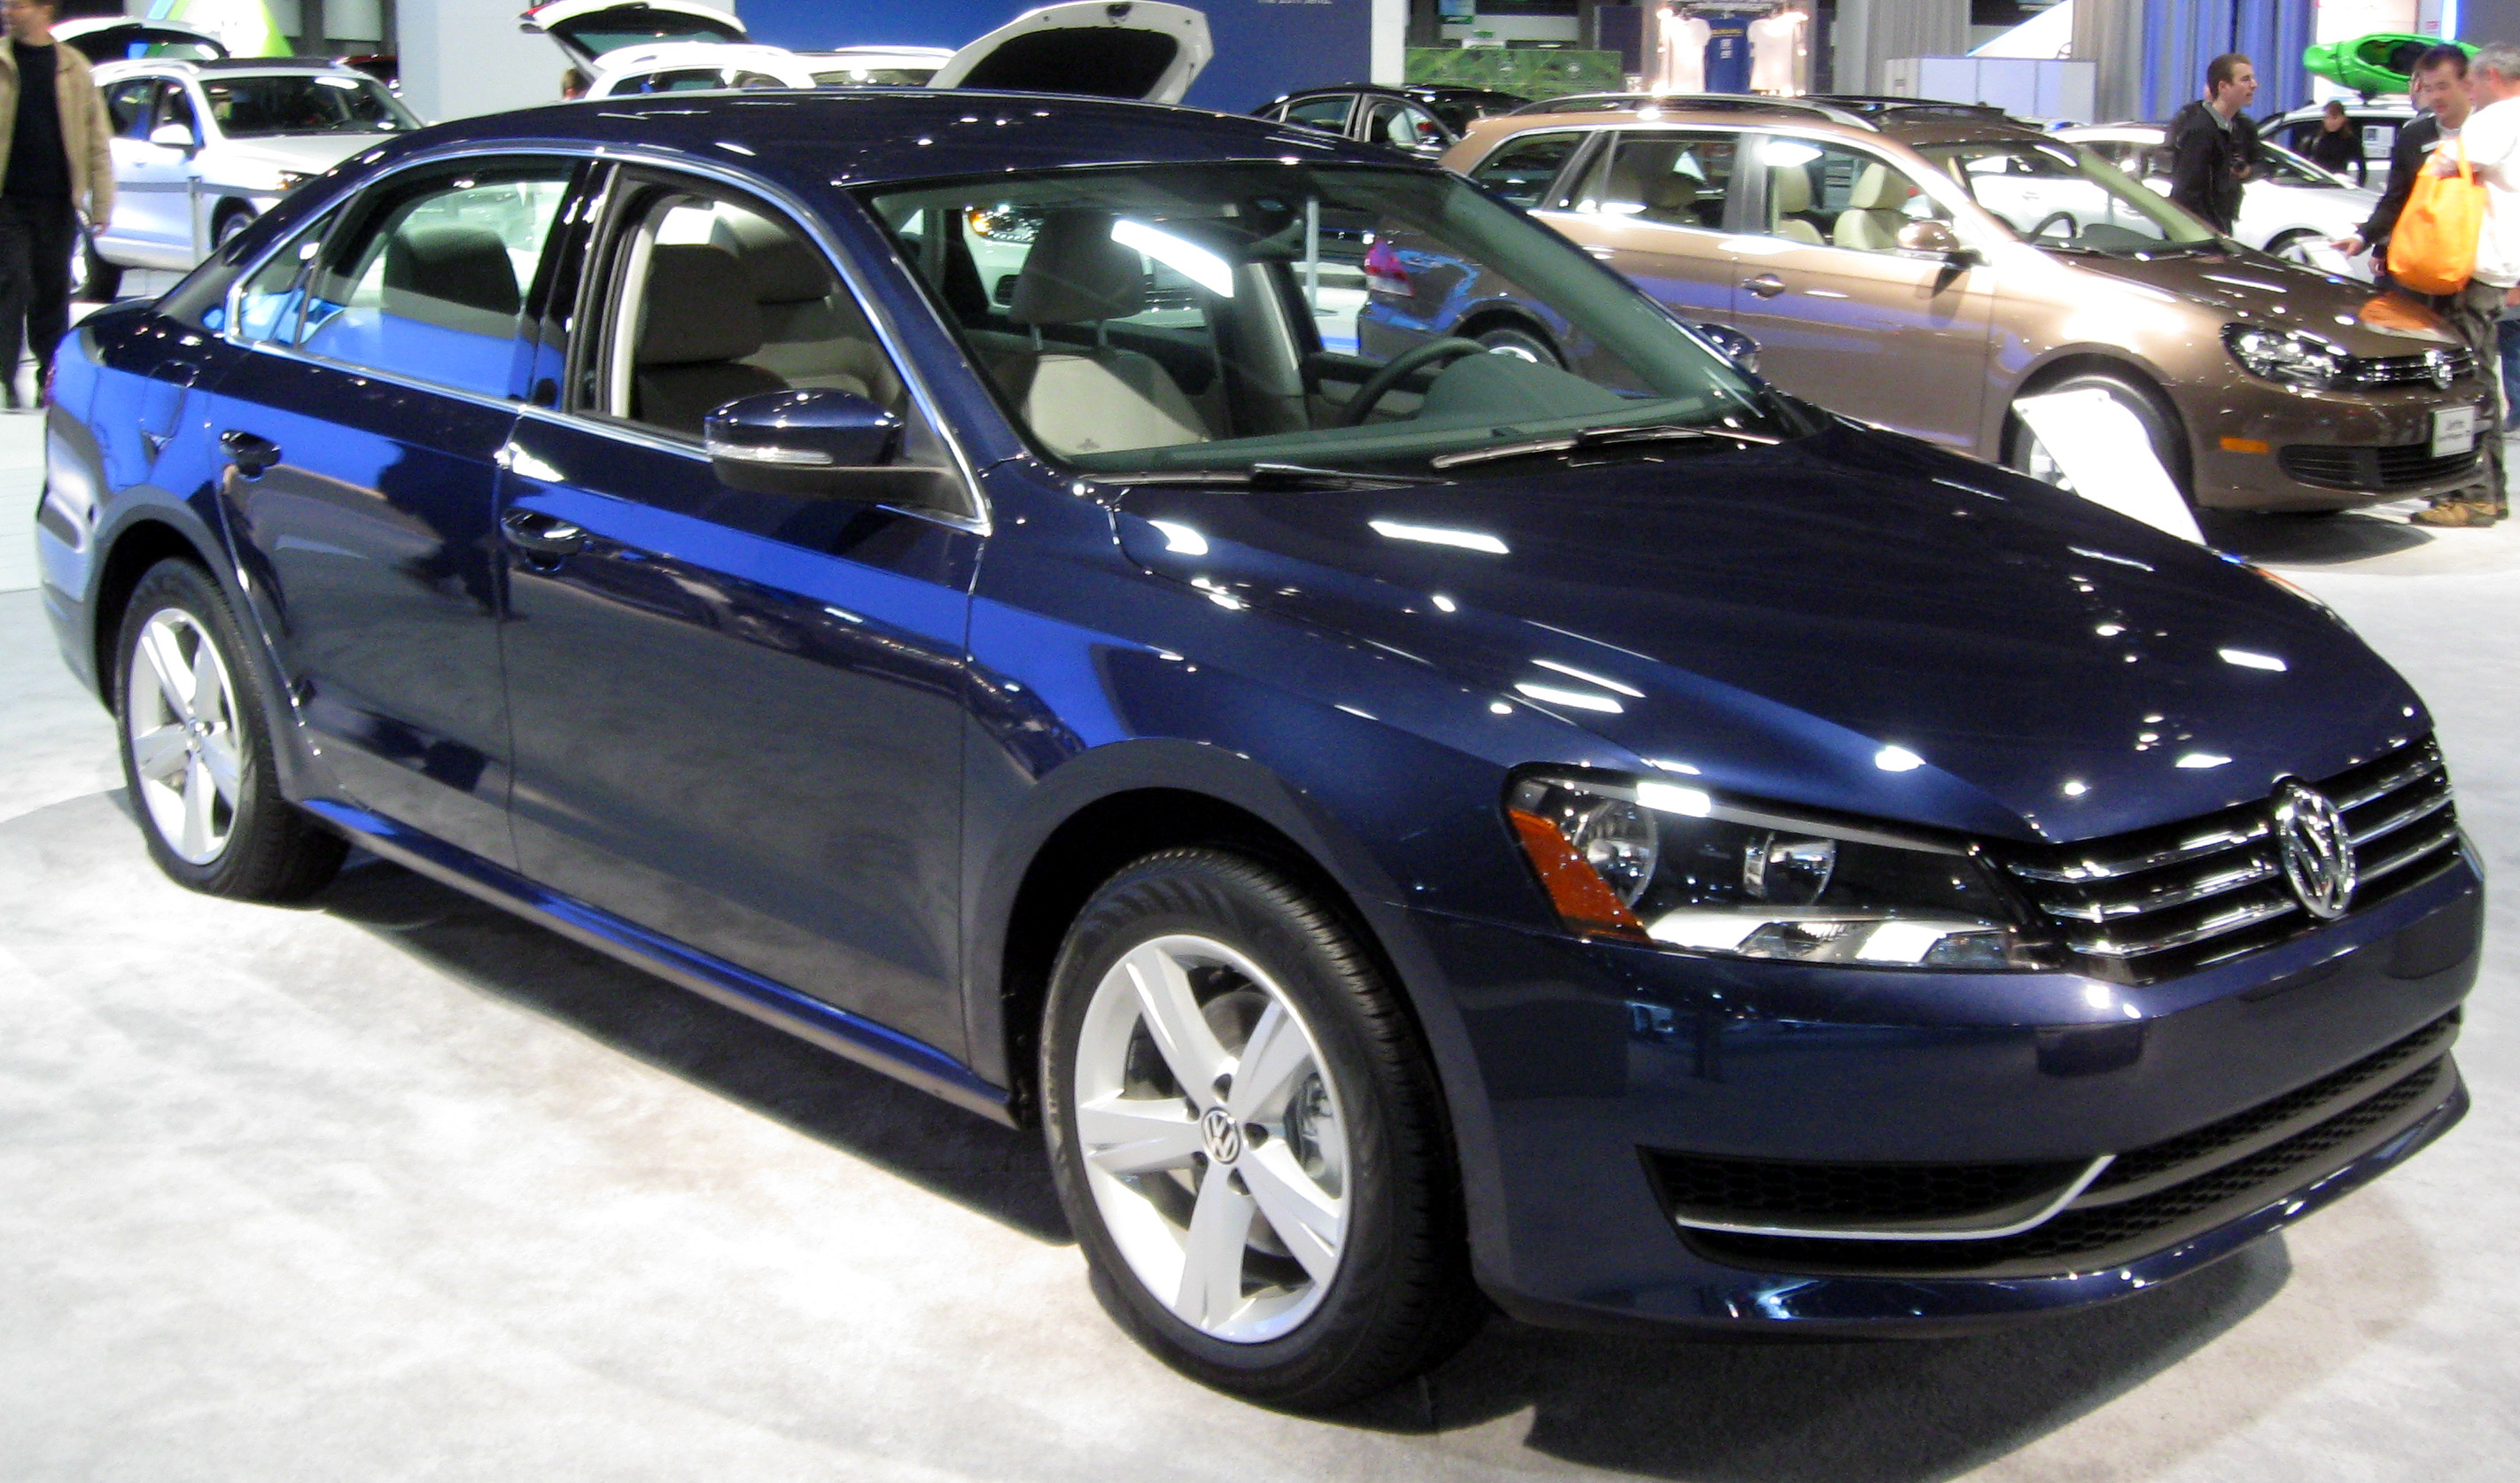 file 2012 volkswagen passat se 2011 wikimedia commons. Black Bedroom Furniture Sets. Home Design Ideas